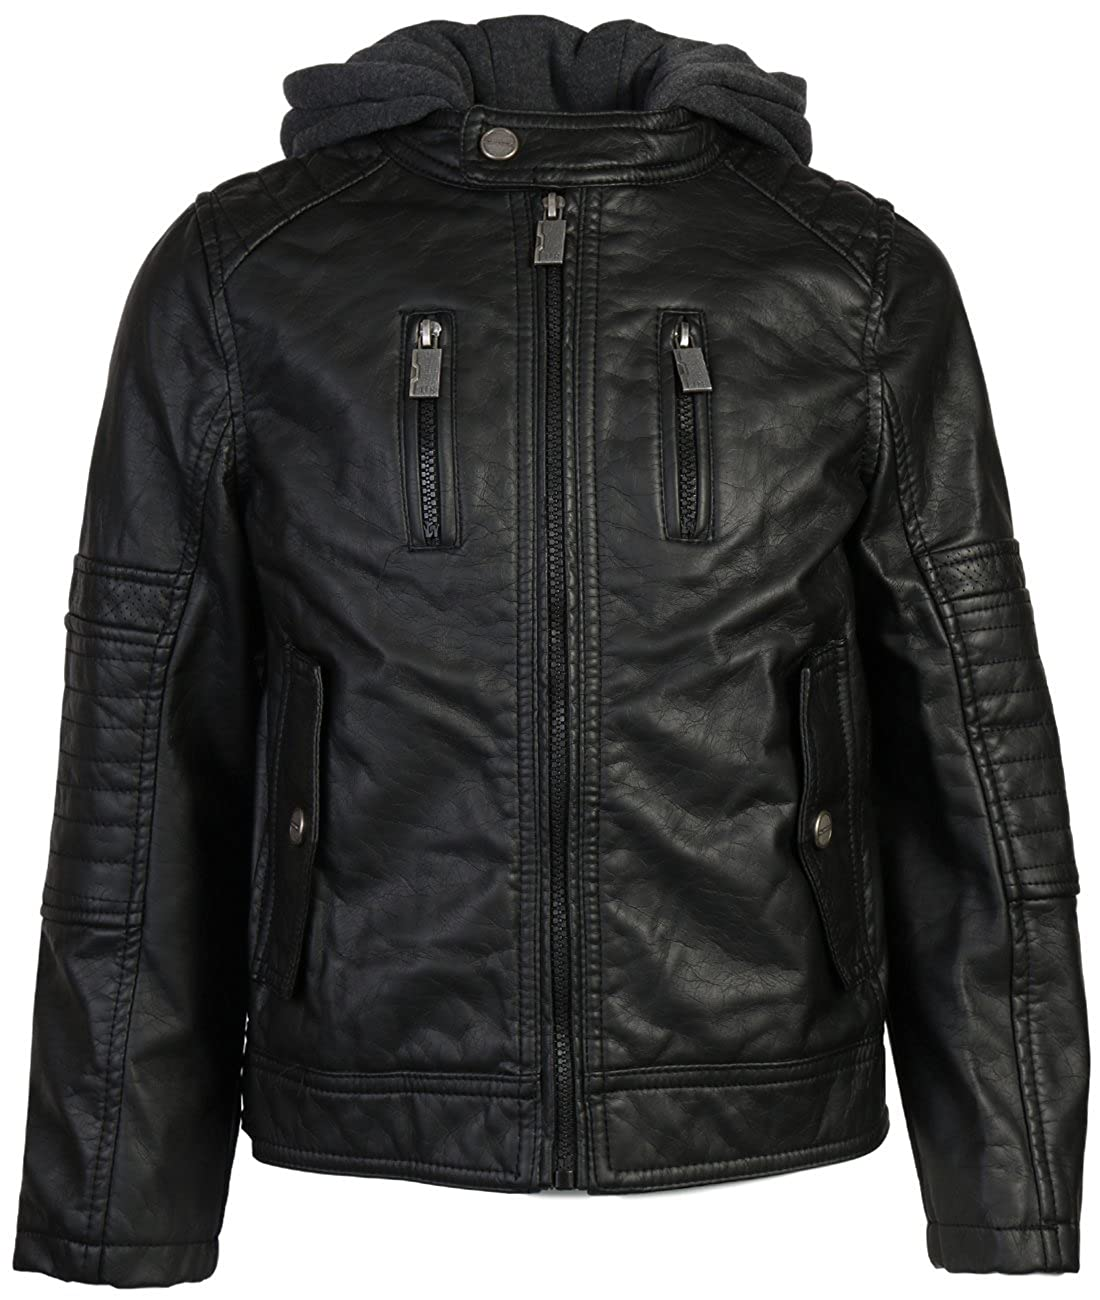 Shop the 35 Leather Jacket No One Will Believe Is From Forever 21 Shop the 35 Leather Jacket No One Will Believe Is From Forever 21 new images